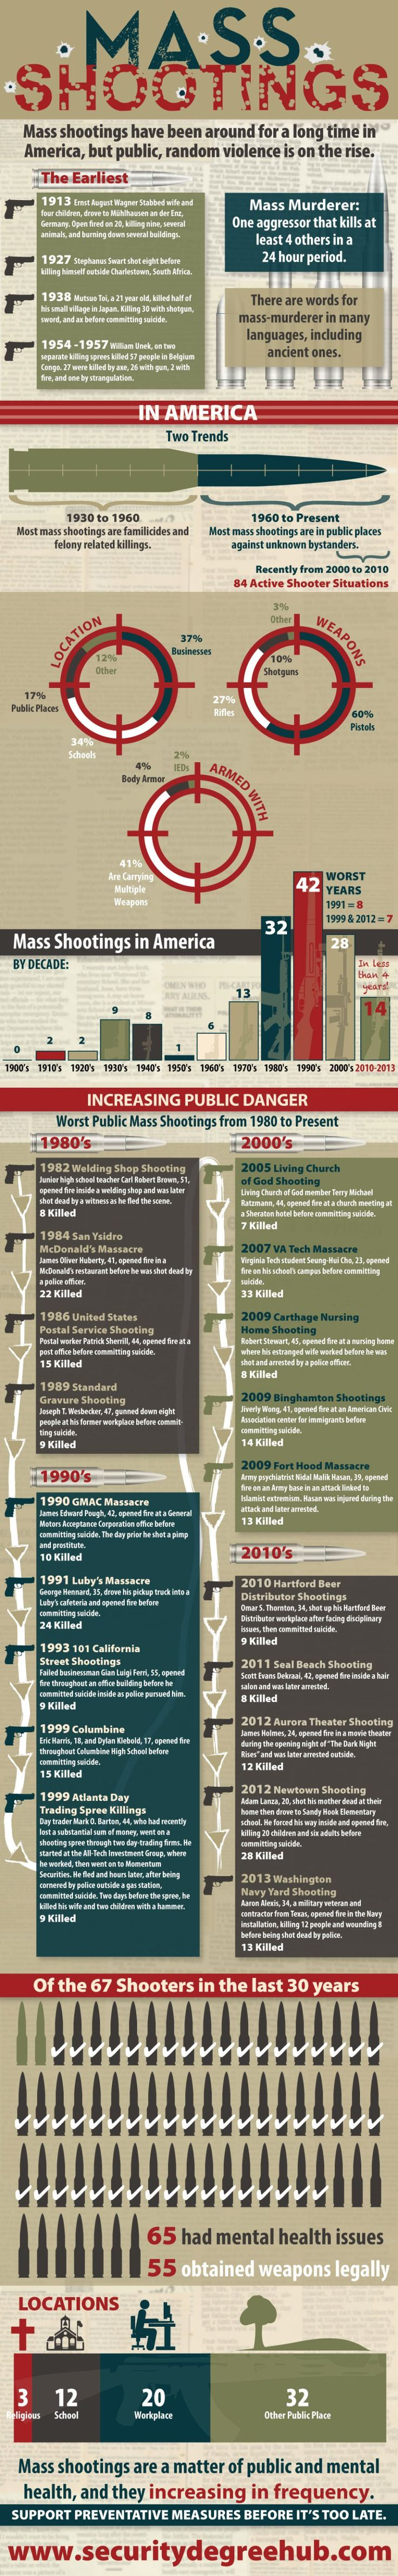 Share this infographic on your site! Source: Security Degree Hub Mass Shootings Mass shootings have been around for a long time in America. But public, random violence is on the rise. Mass Murder: One aggressor. Kills at least 4 others. In a 24 hour period. The earliest 1913–Ernst August Wagner–Stabbed wife and four children, drove …